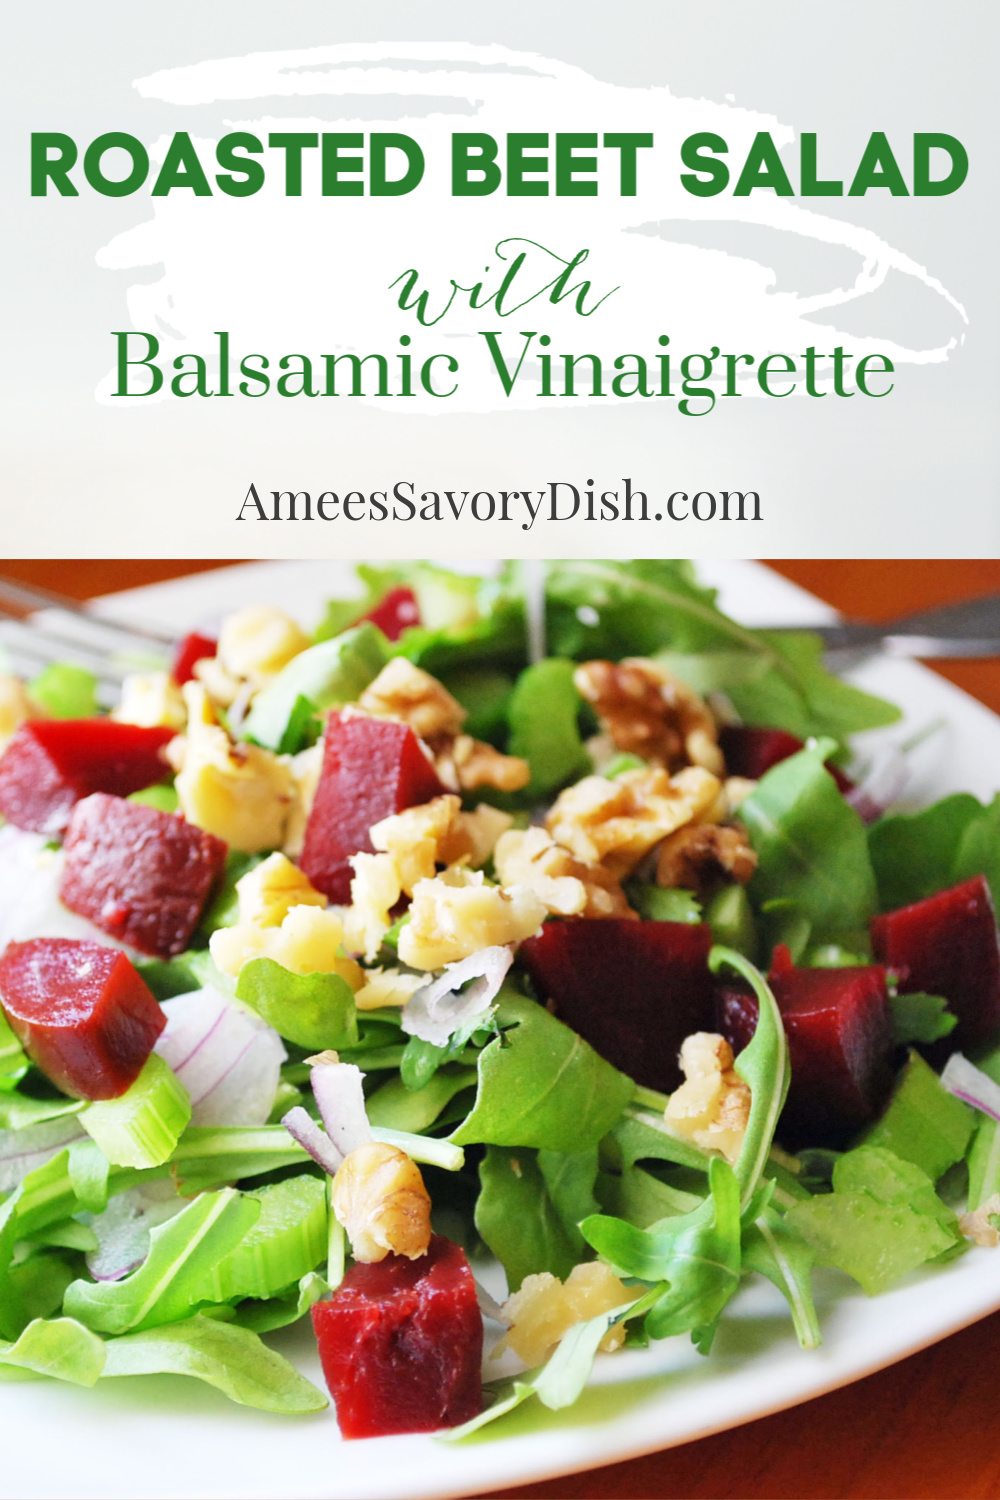 A simple roasted beet salad recipe made with fresh arugula greens, red onion, walnuts and roasted beets with a homemade balsamic vinaigrette dressing. #beetsalad #roastedbeets #saladrecipe via @Ameecooks